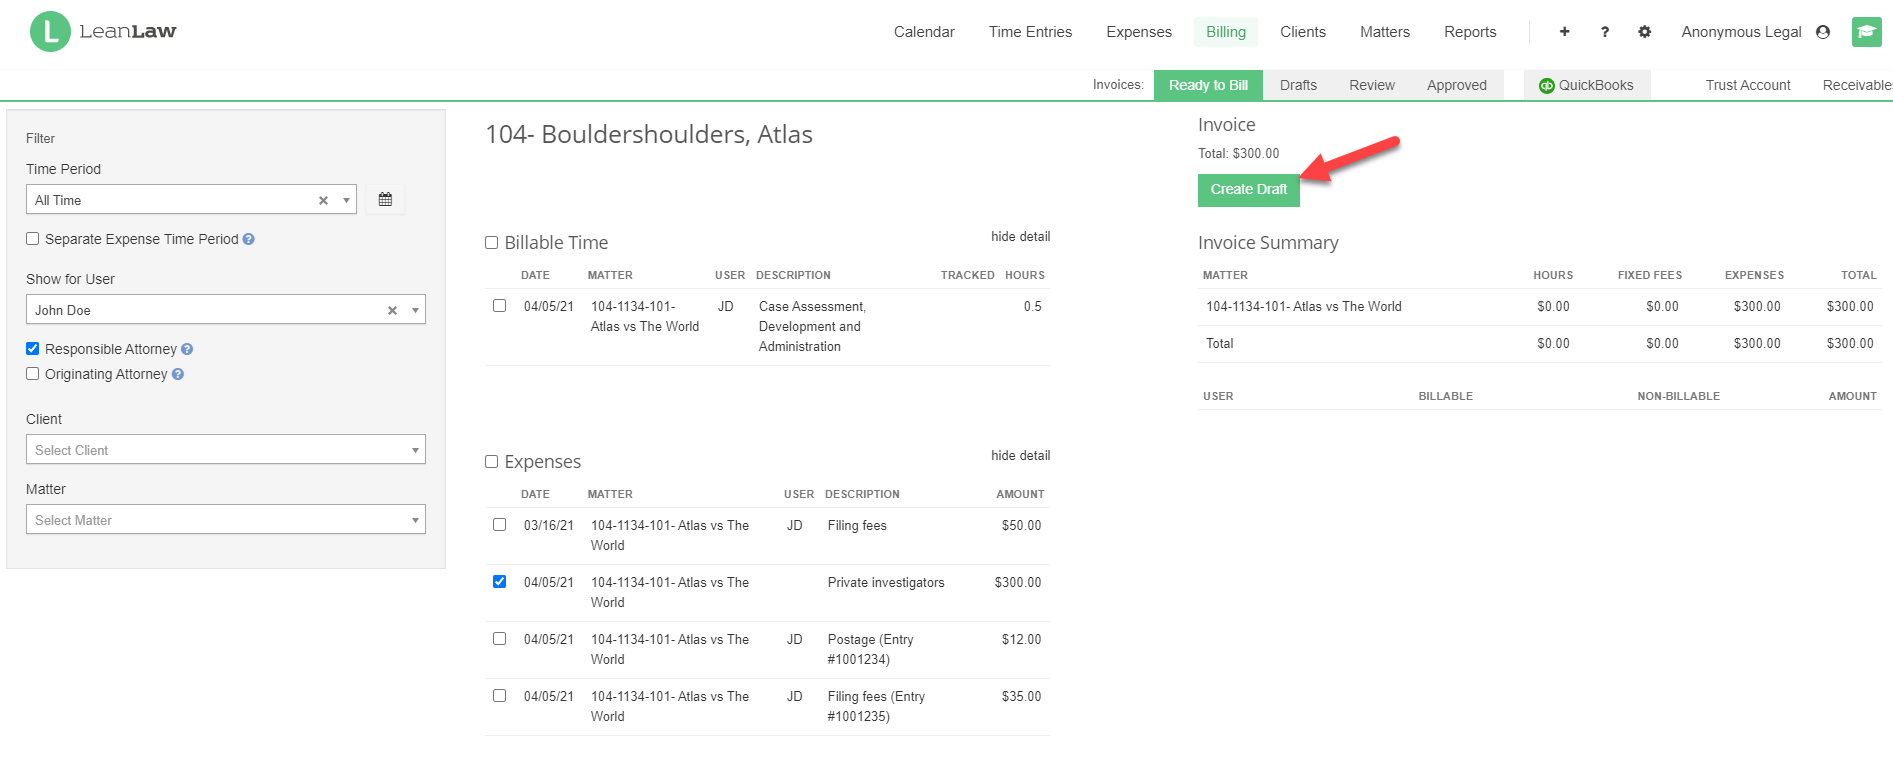 An image of the Invoice Builder interface with the Create Draft button indicated